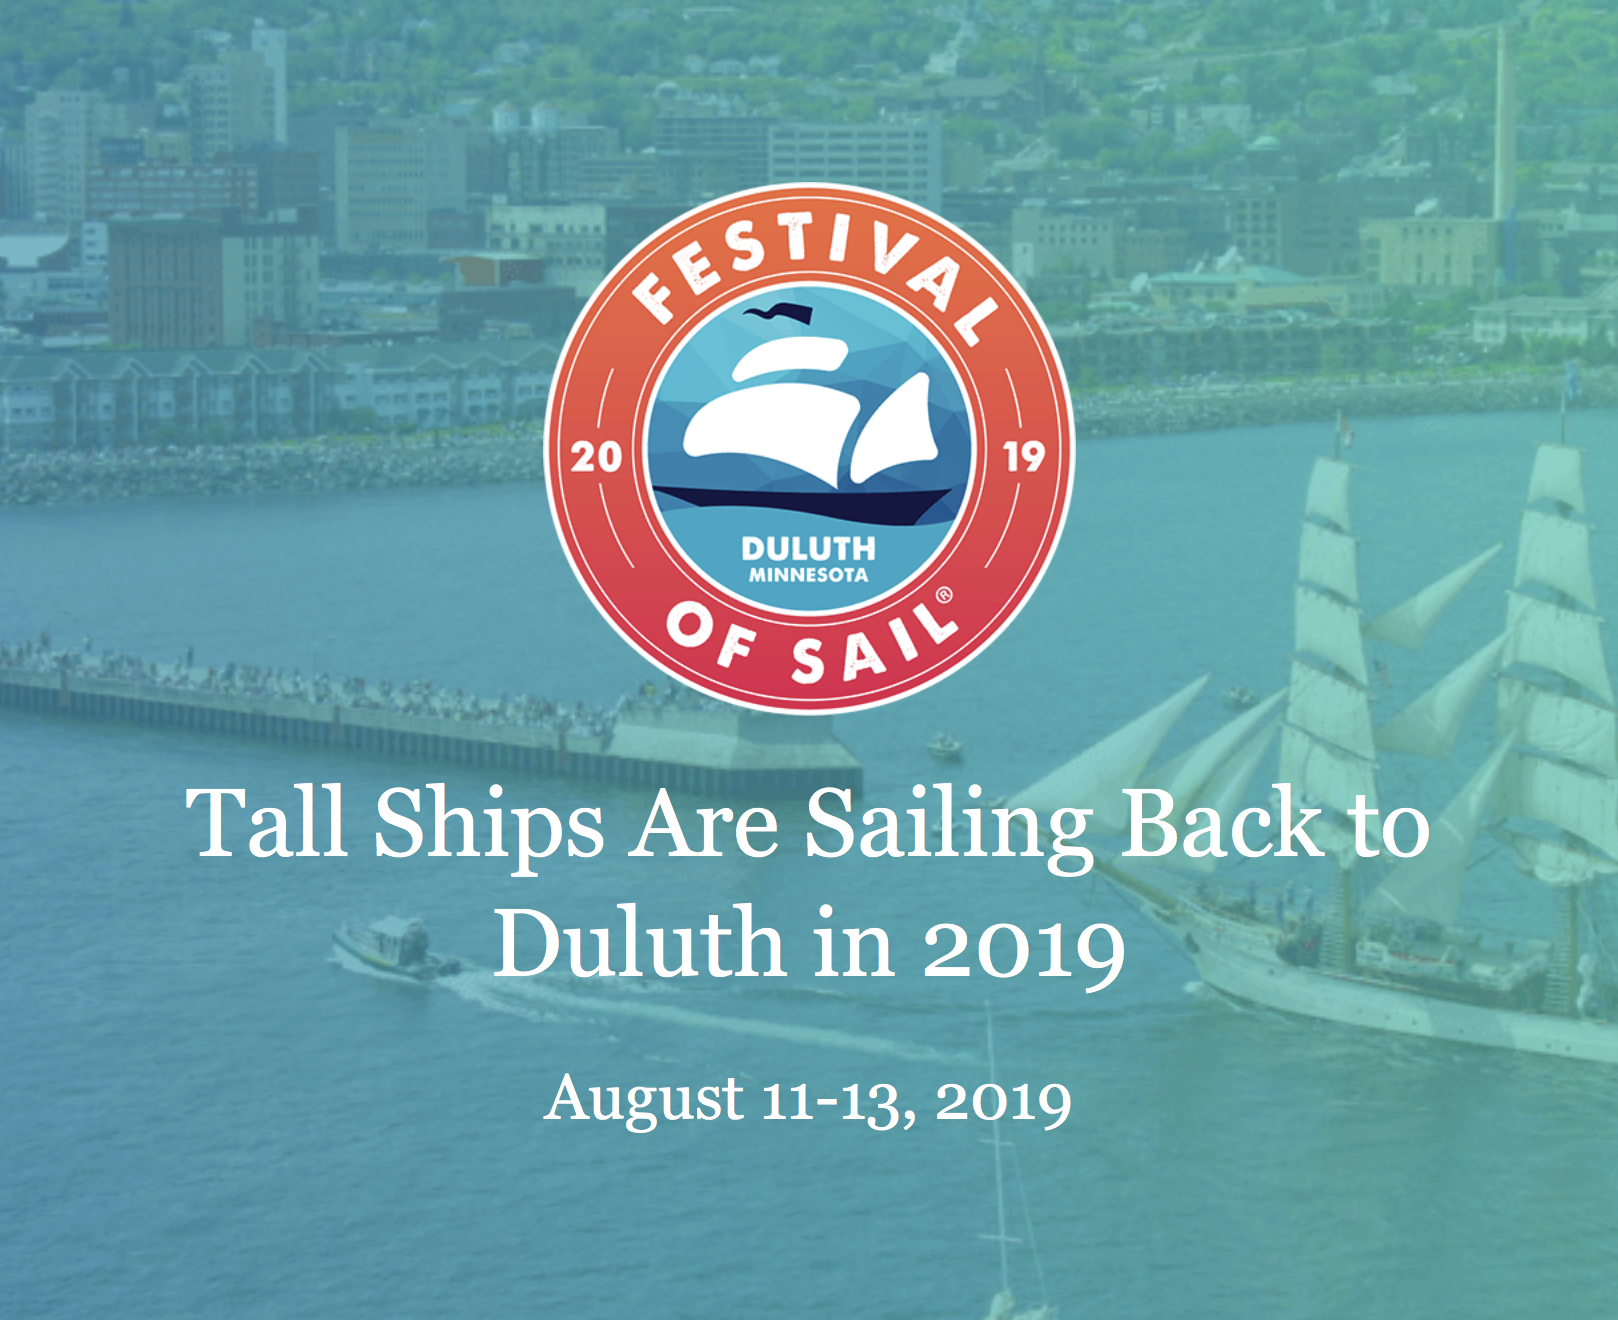 Tall Ships Duluth 2019 thumbnail.png